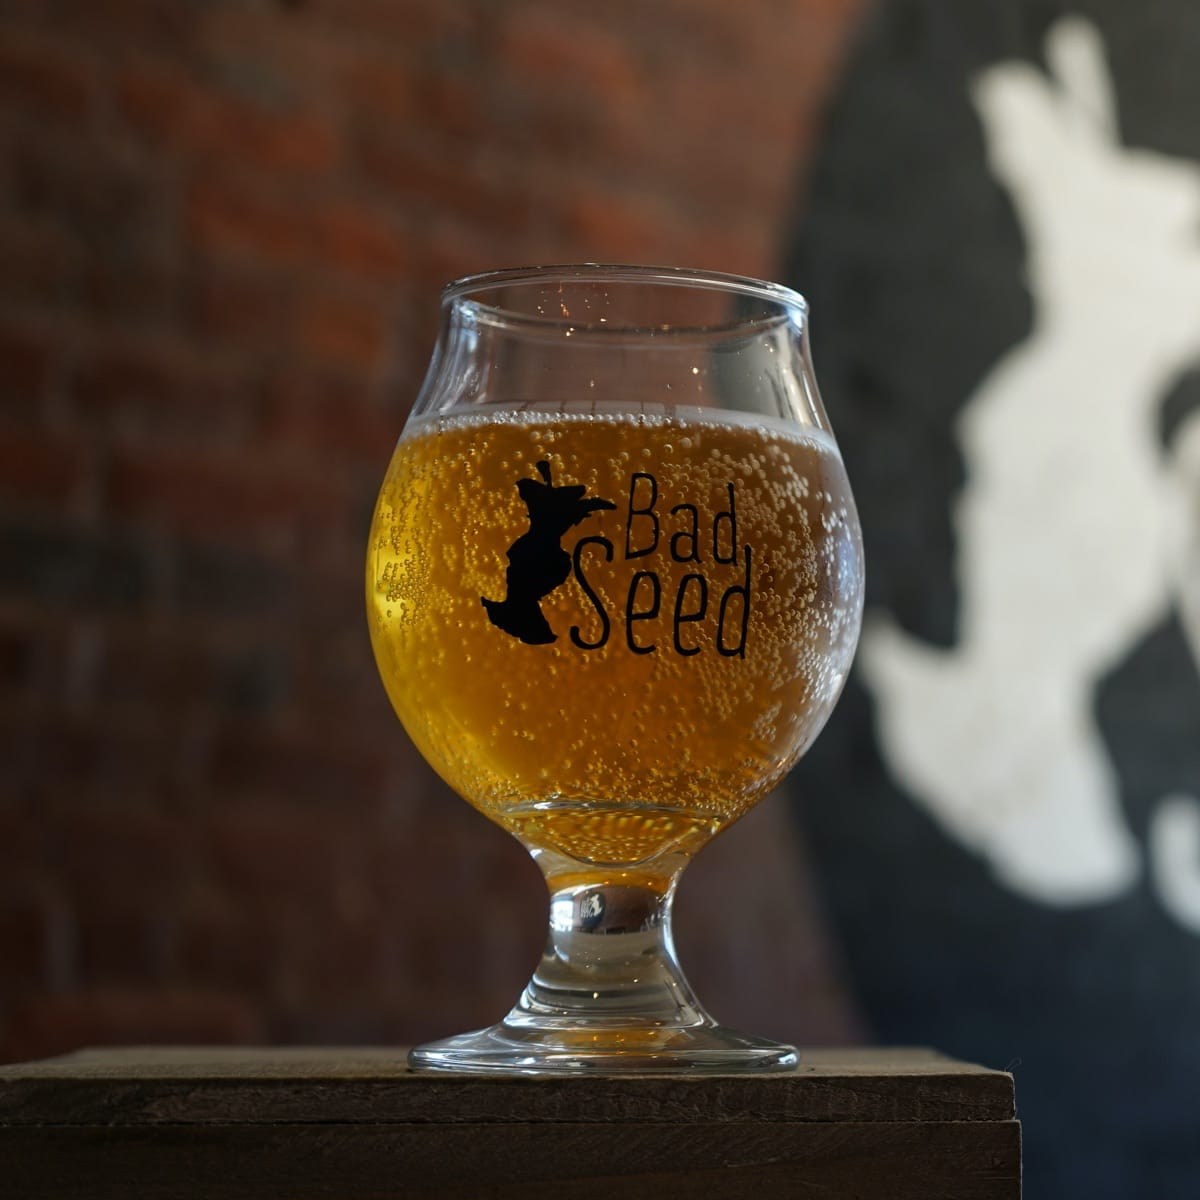 A tulip glass of one of Bad Seed's small batch ciders sitting on a rustic wooden plank with a brick wall in the background.